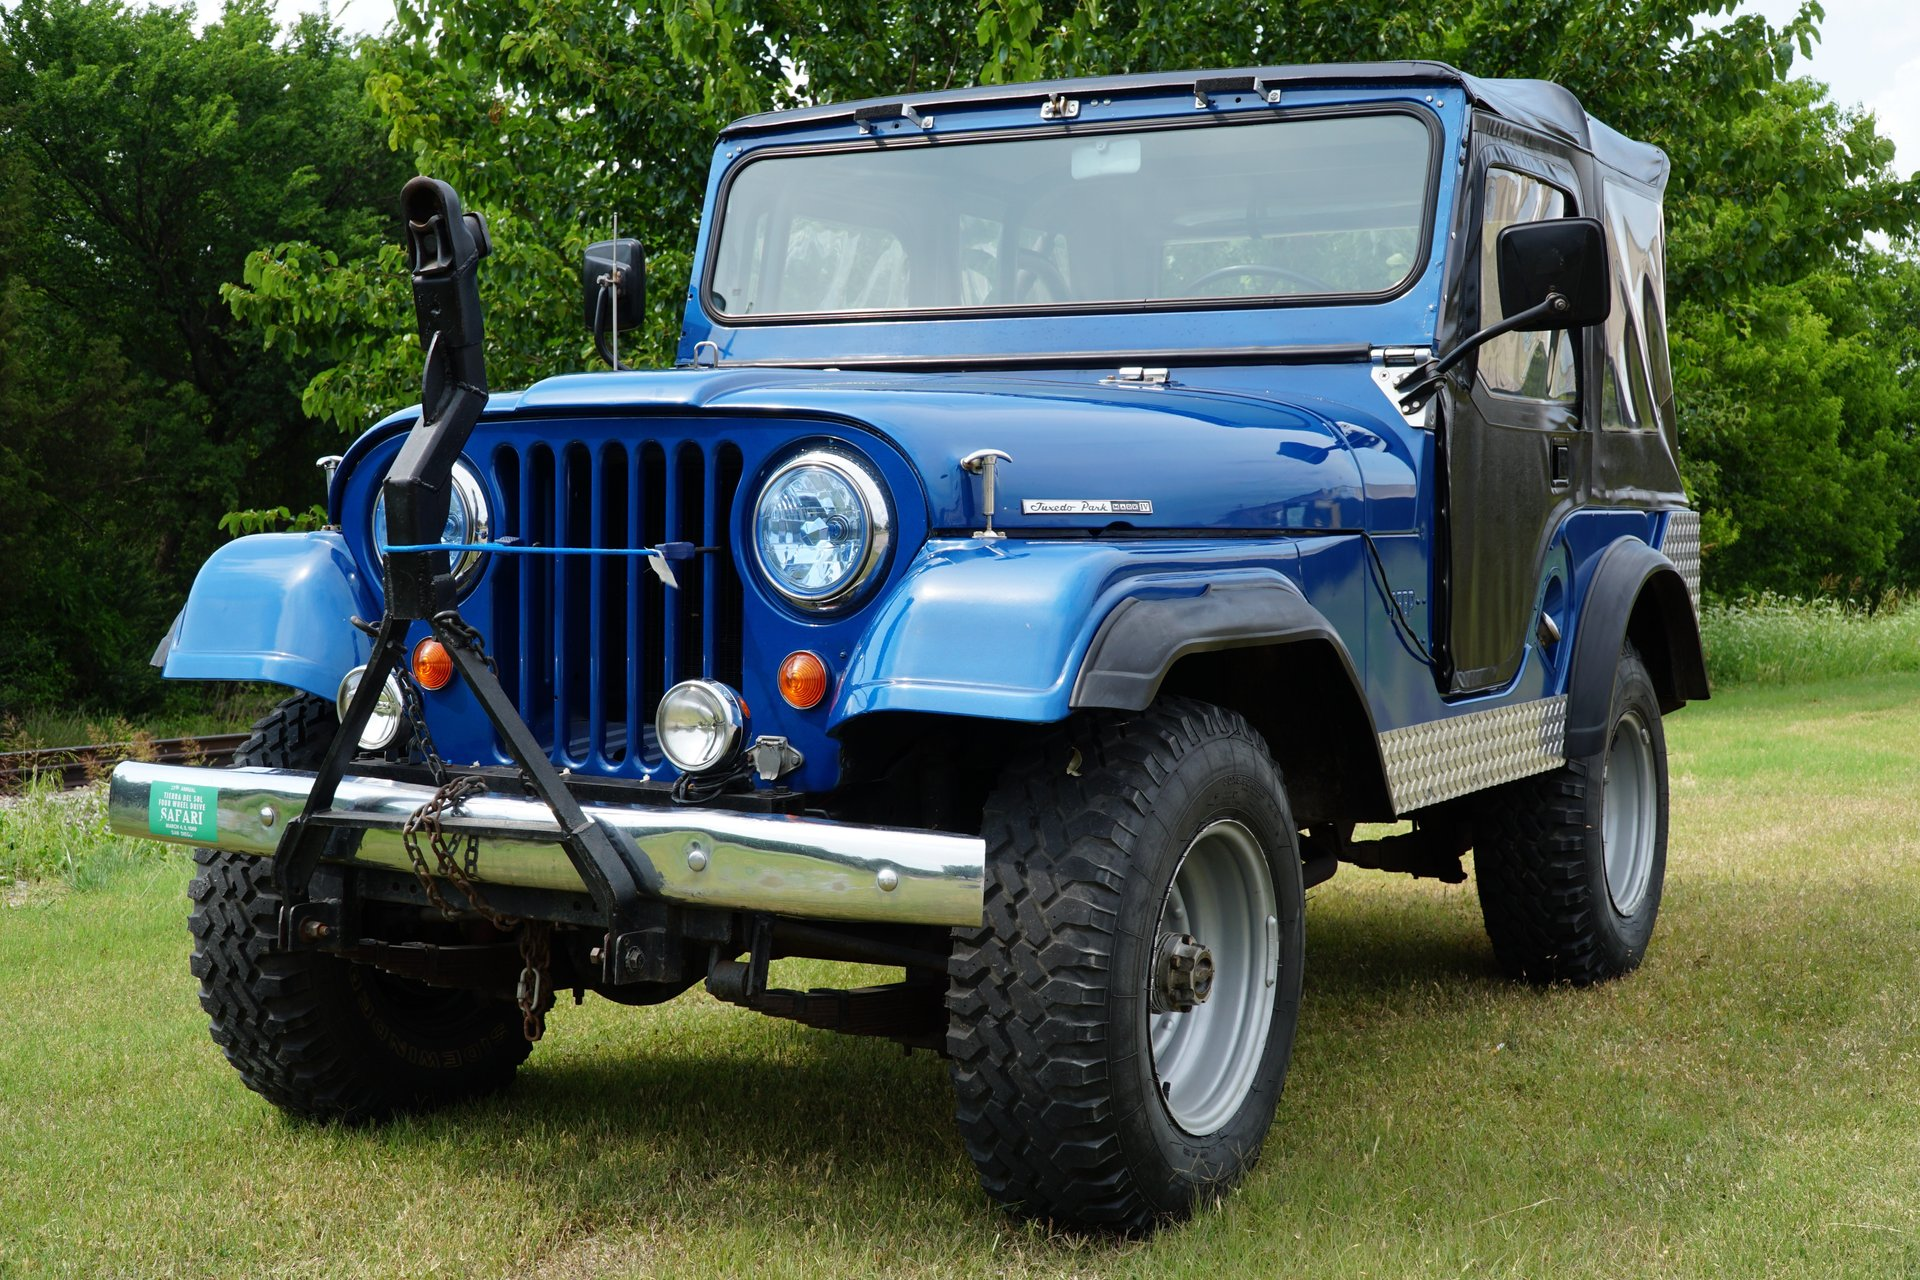 1965 jeep cj tuxedo park edition from tickle me starring elvis presley